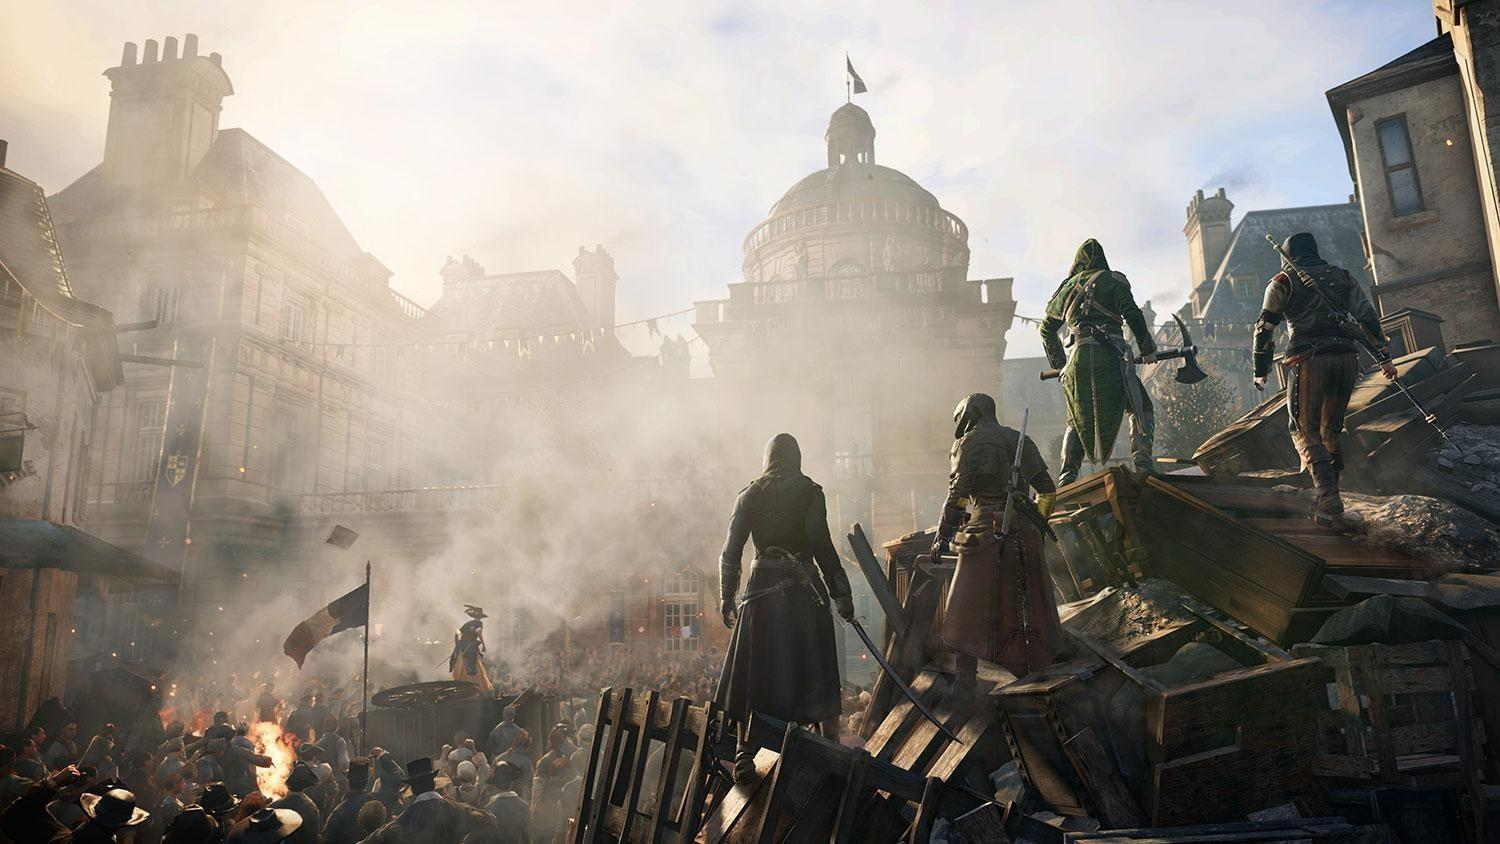 It's Official: The next Assassin's Creed isn't coming out in 2016